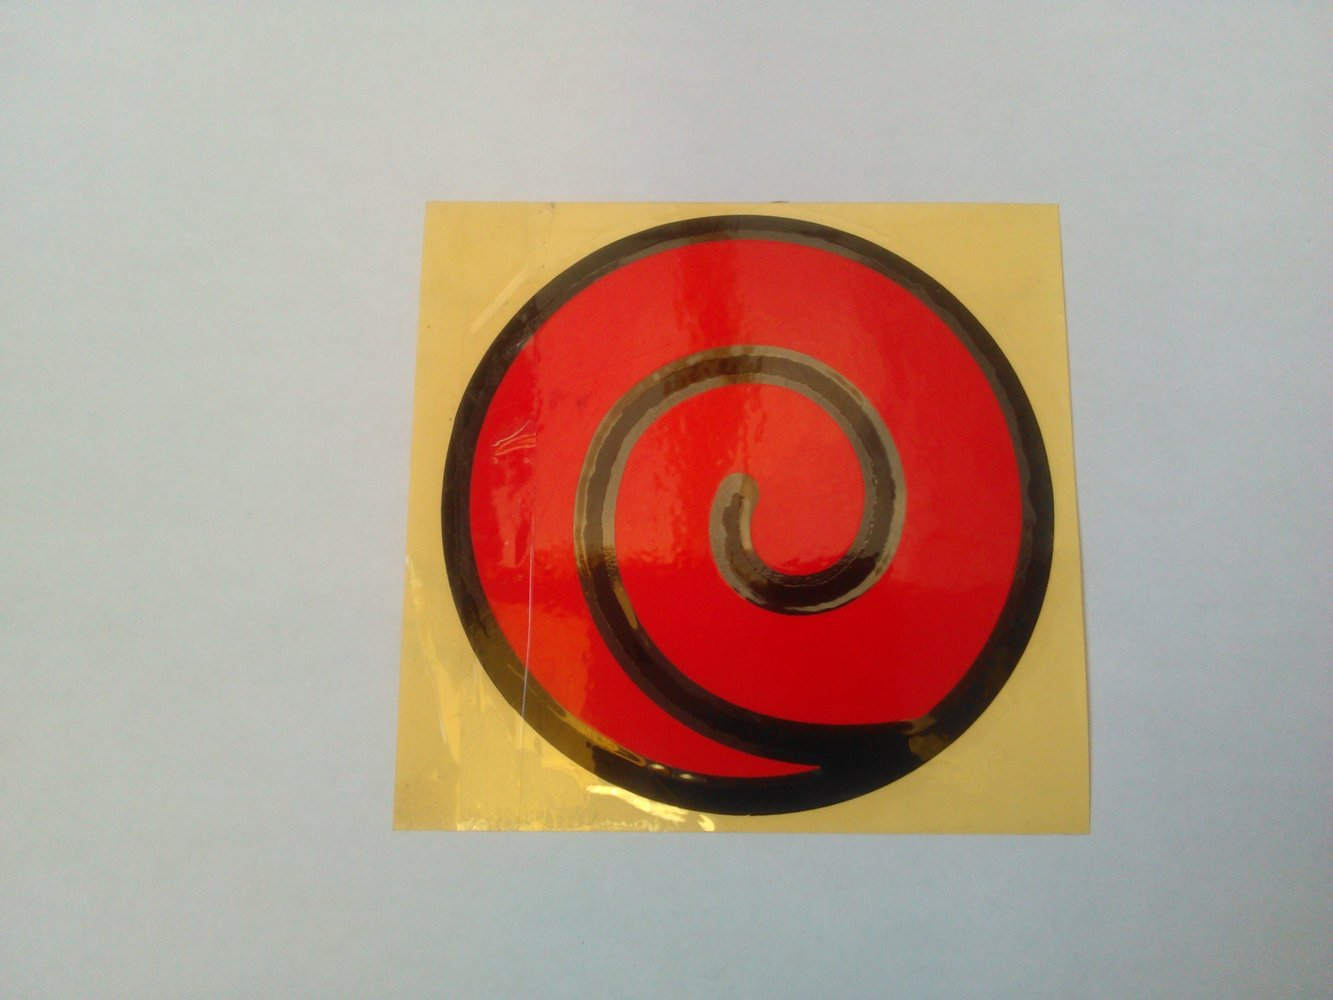 Uzumaki Clan Logo Naruto Anime Stickers - REFLECTIVE